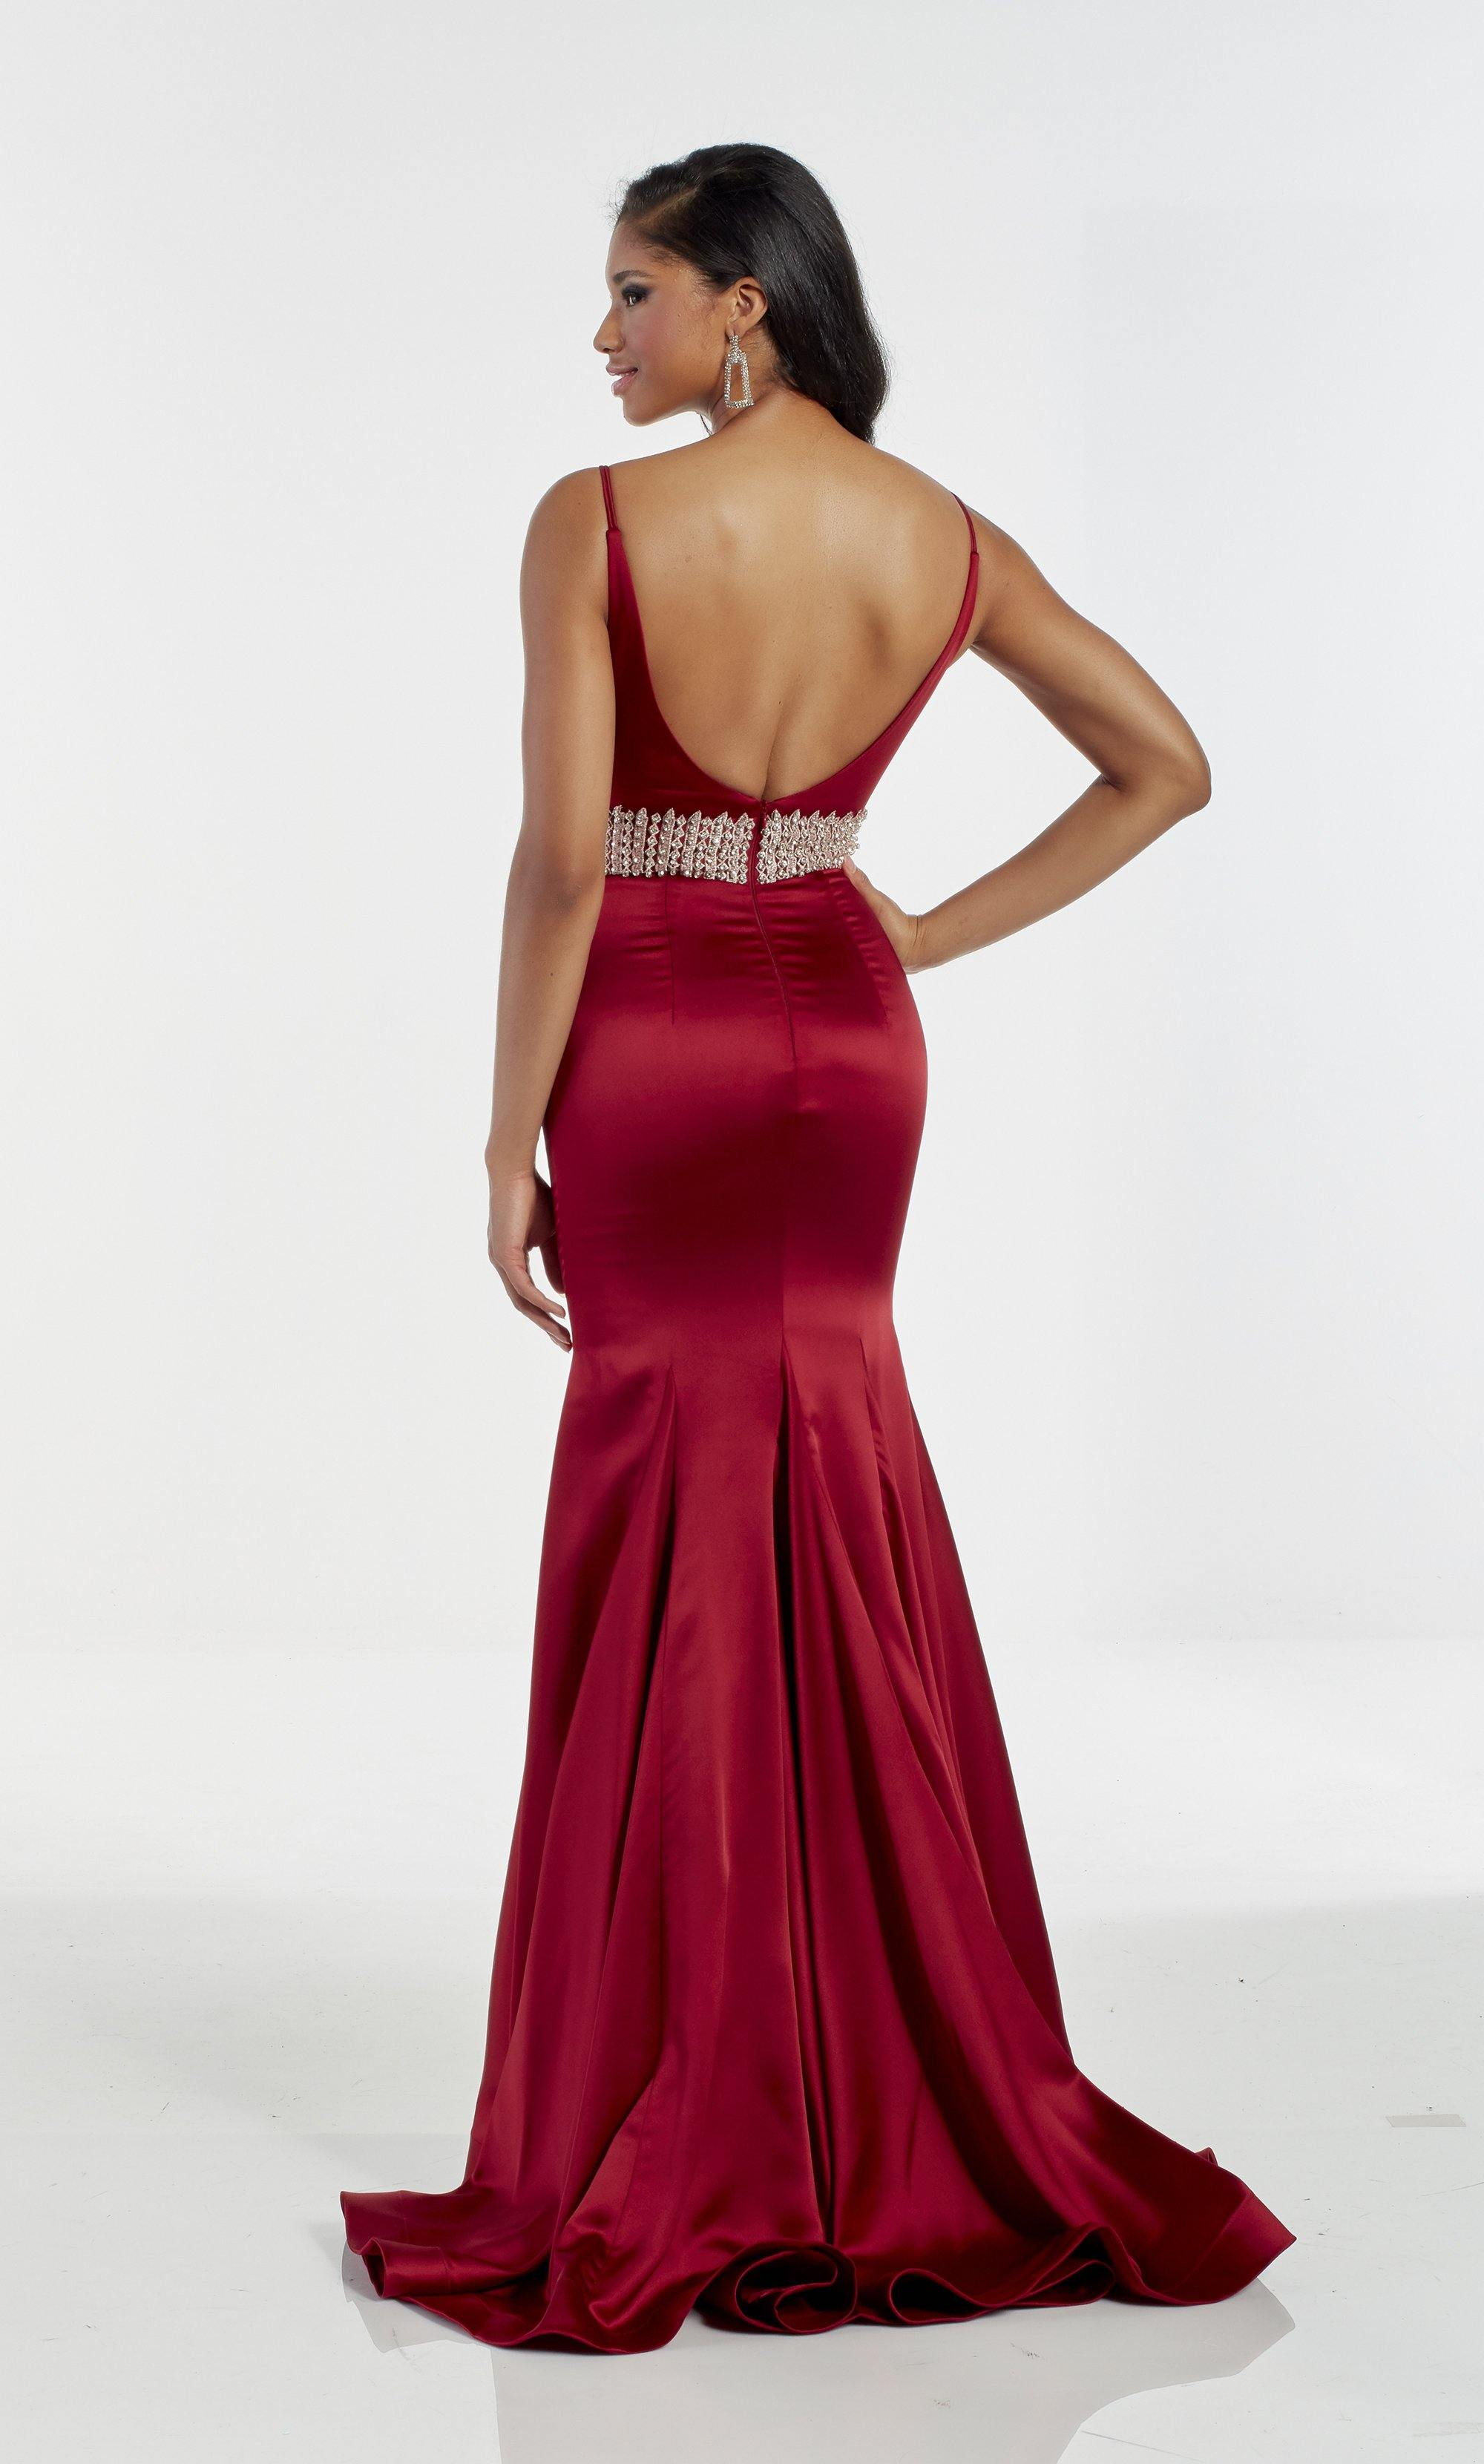 Red satin fit and flare wedding guest dress with a jewel embellished waistline